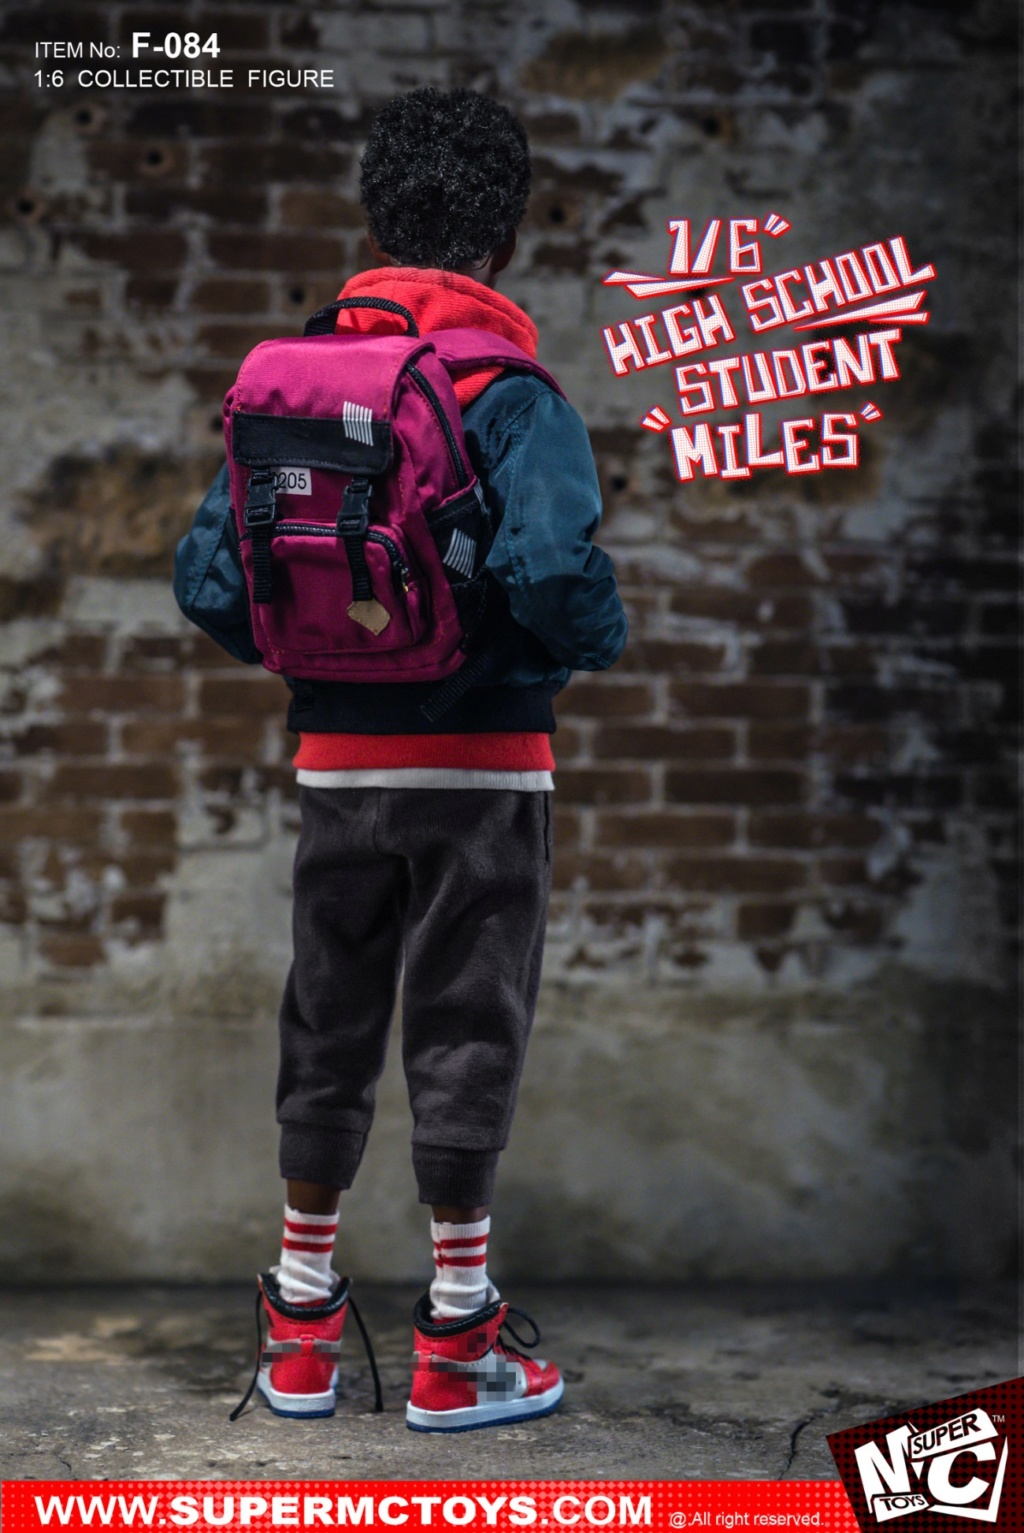 animatedmovie-based - NEW PRODUCT: SUPERMCTOYS: 1/6 High School Students - Little Black Miles Miles Movable F-084# 19372410